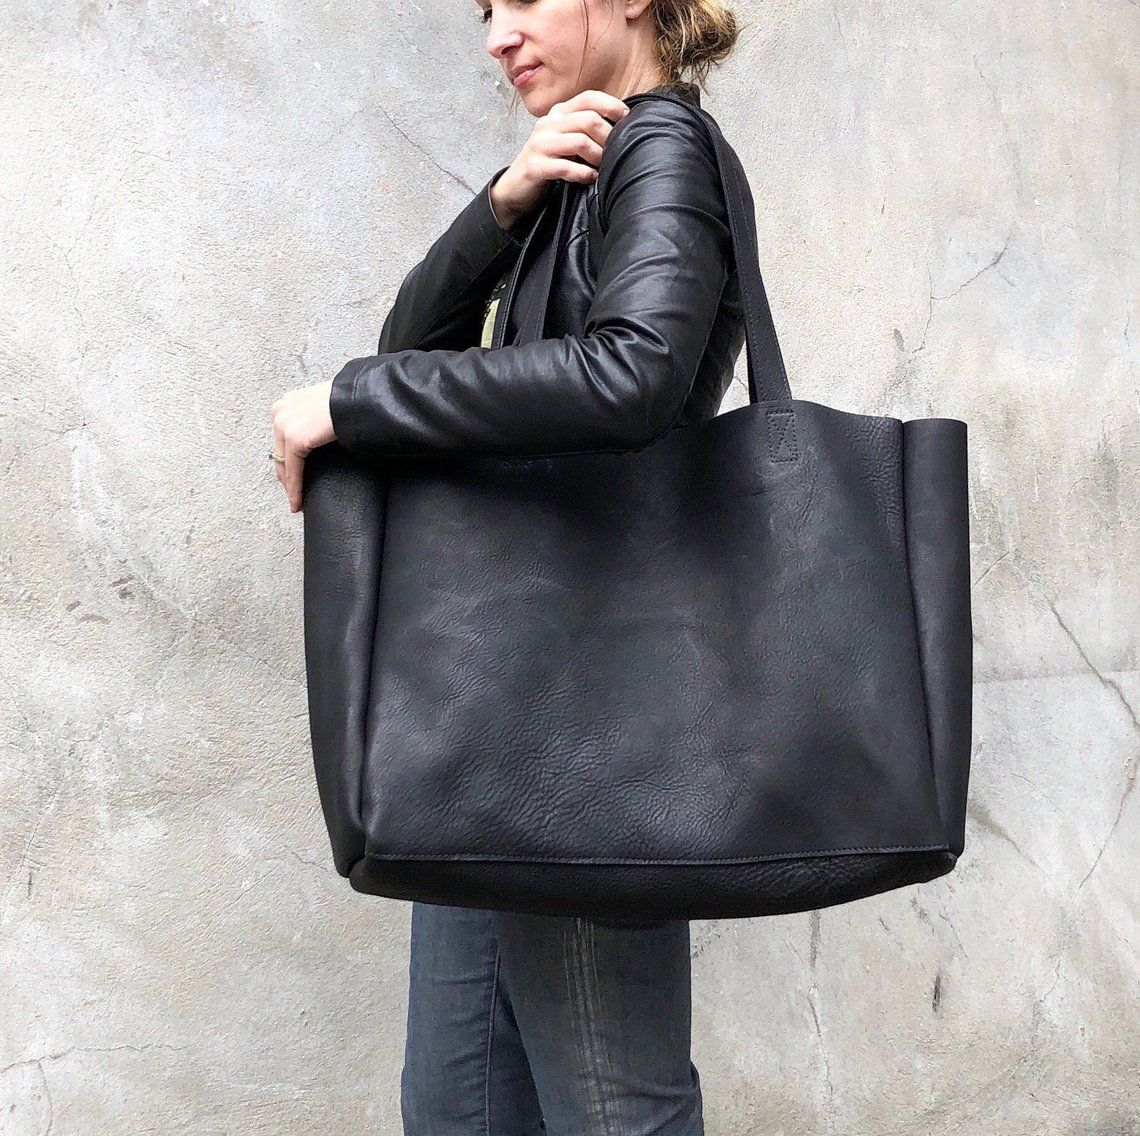 Sale!! Zipper tote bag Leather shopper tote Gray Extra large leather tote bag purse small tote bag purse handmade tote Small